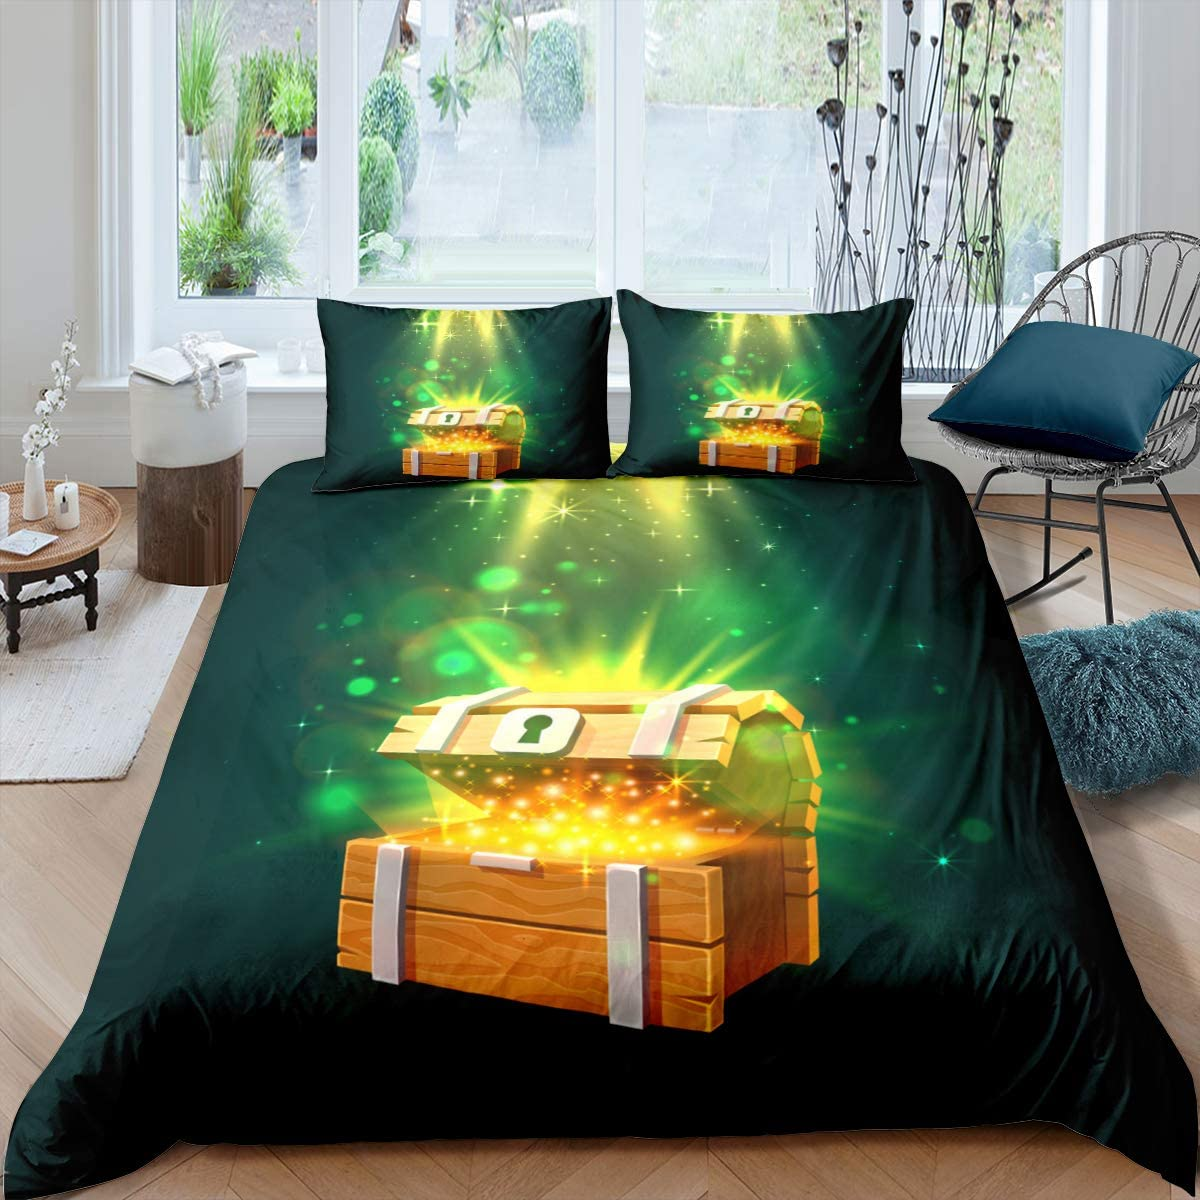 ,Full Size Loussiesd Lizard Comforter Cover Colorful Lizard Duvet Cover Reptile Bedding Set Teal Decor Breathable Quilt Cover for Kids Boys Girls Teens 1 Duvet Cover with 2 Pillow Cases